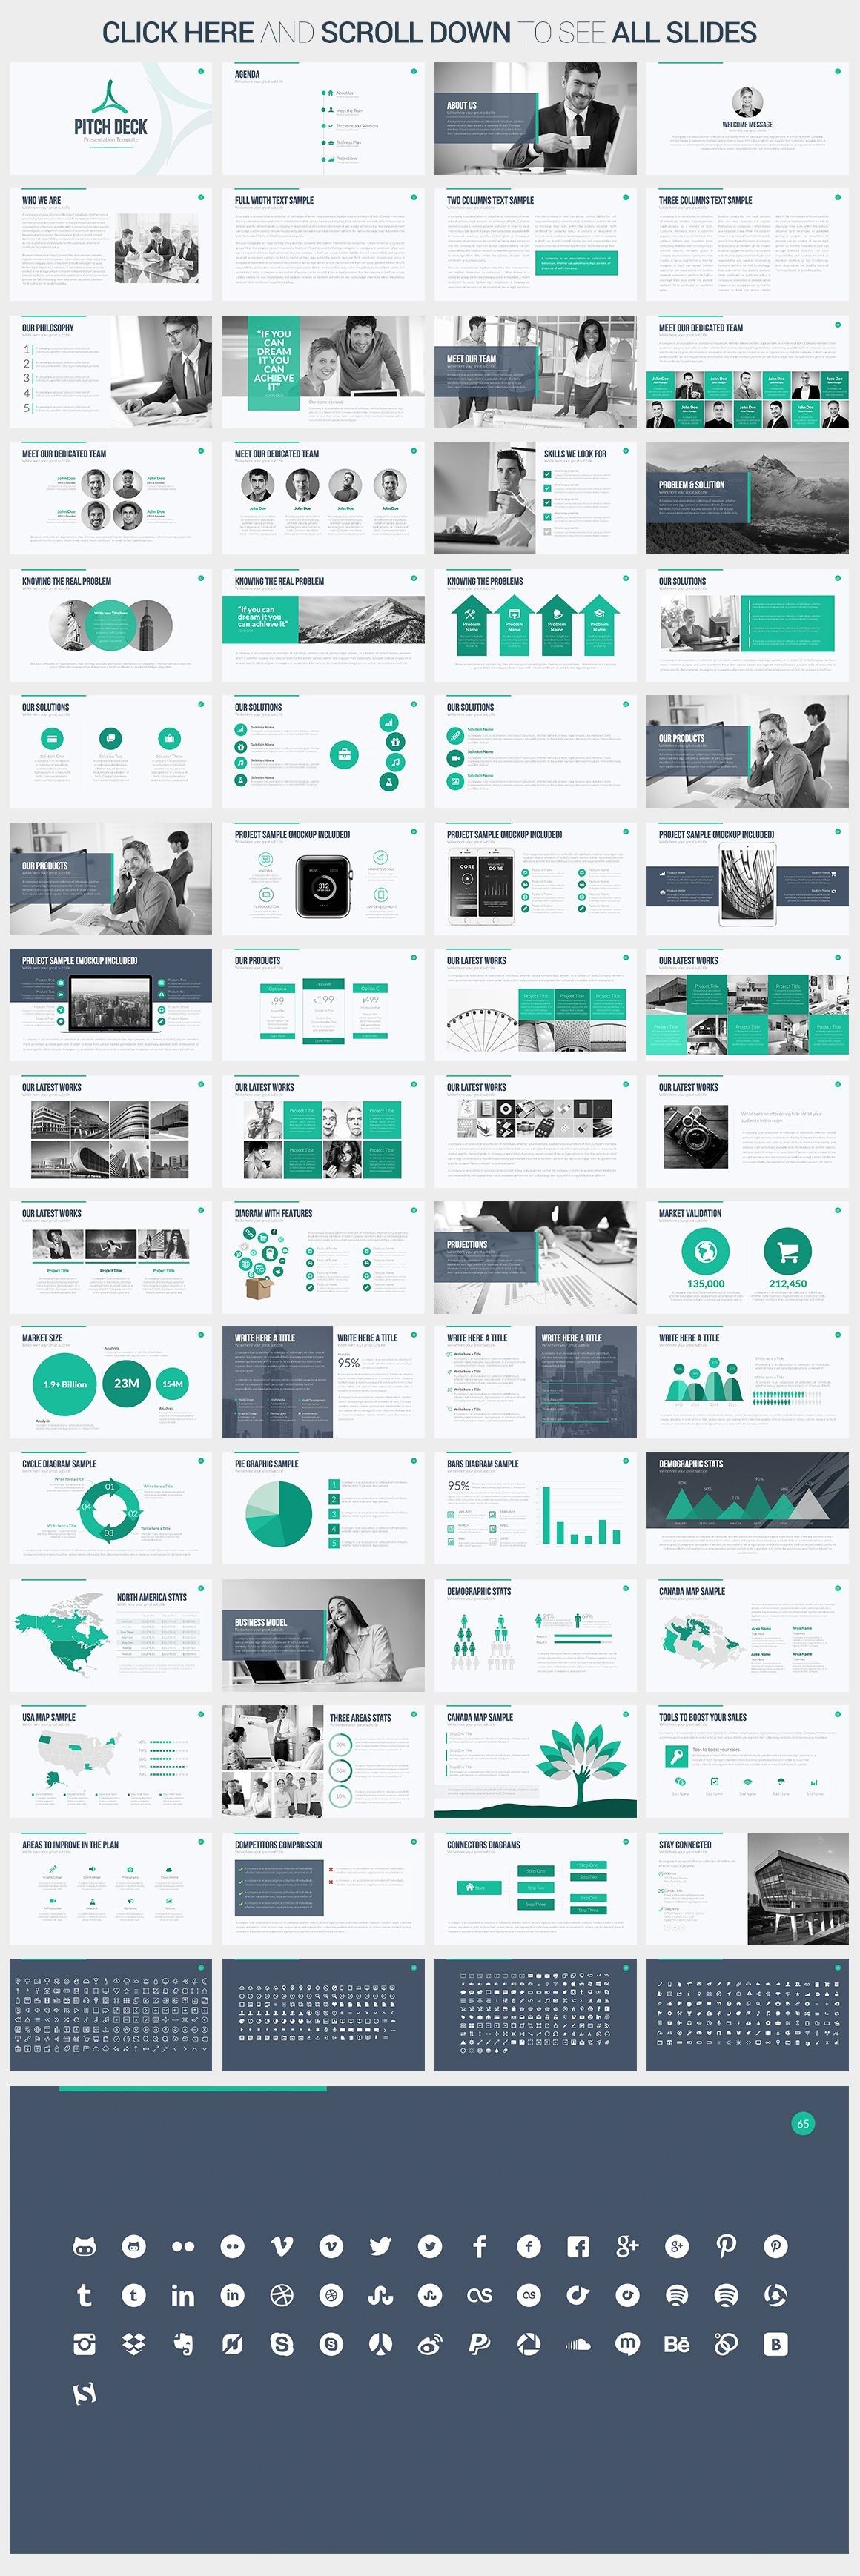 Pitch Deck PowerPoint Template by SlidePro on Creative